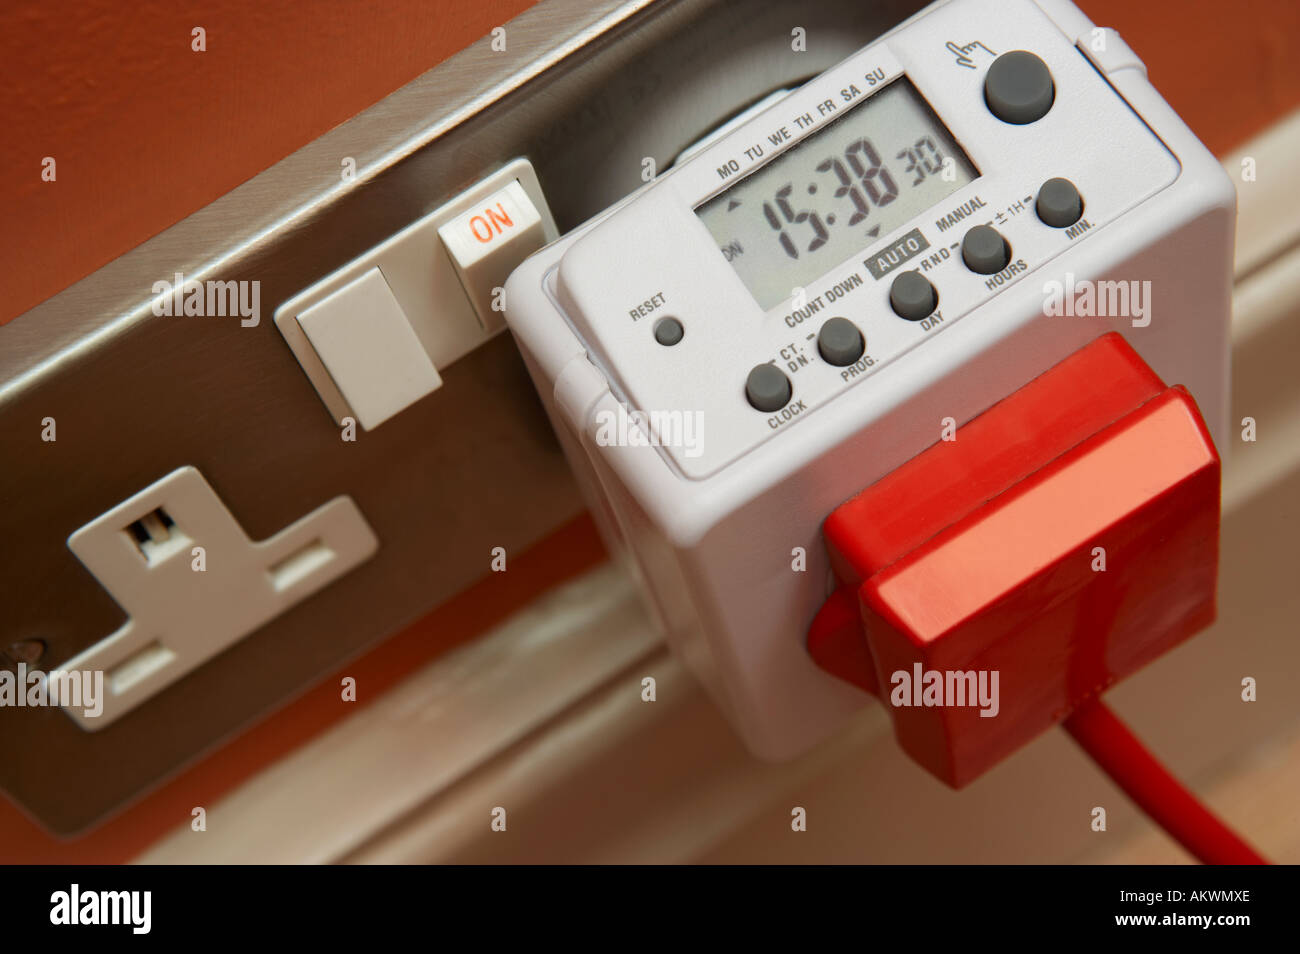 DIGITAL ELECTRONIC TIMER FOR ELECTRICAL APPLIANCES PLUGGED INTO 13 AMP MAINS SOCKET Stock Photo